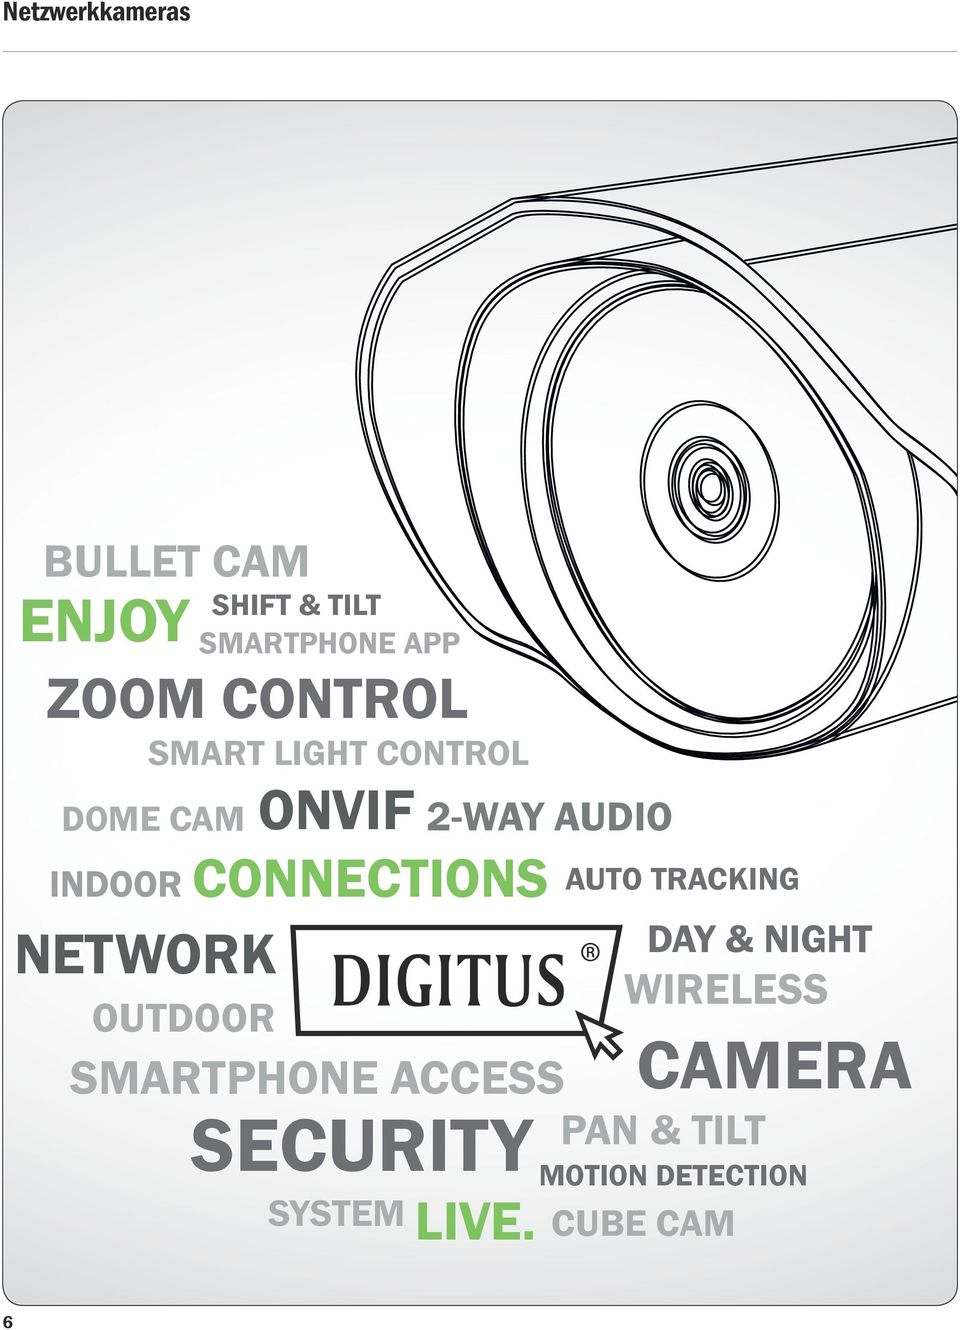 SHIFT & TILT SYSTEM 2-WAY AUDIO SMARTPHONE ACCESS SECURITY LIVE.